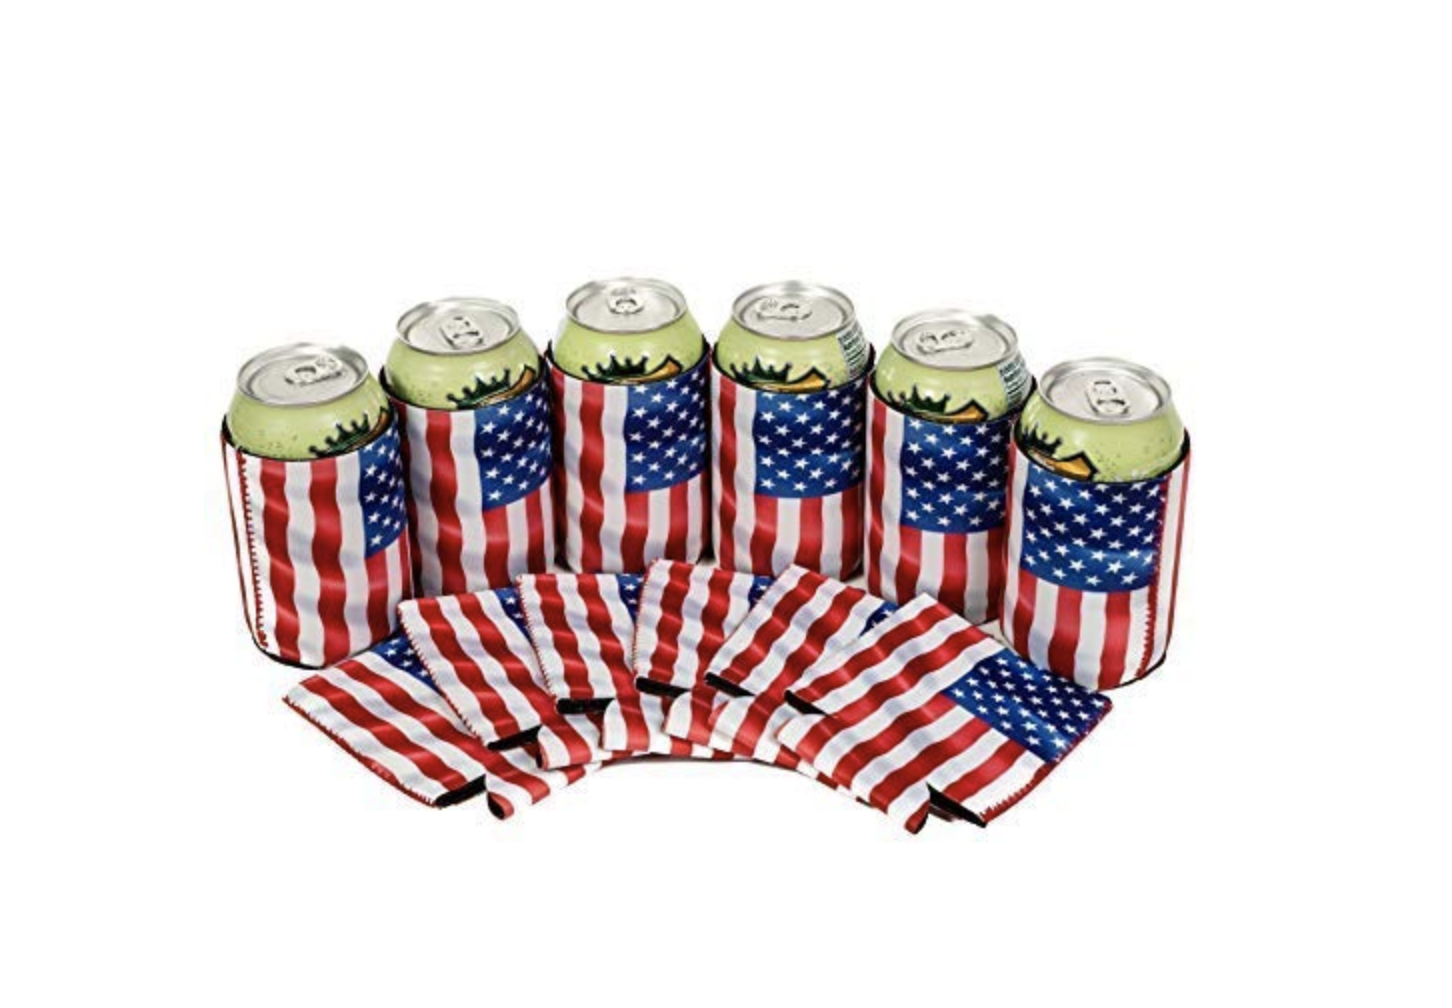 QualityPerfection's USA Flag Themed Drink Coozies